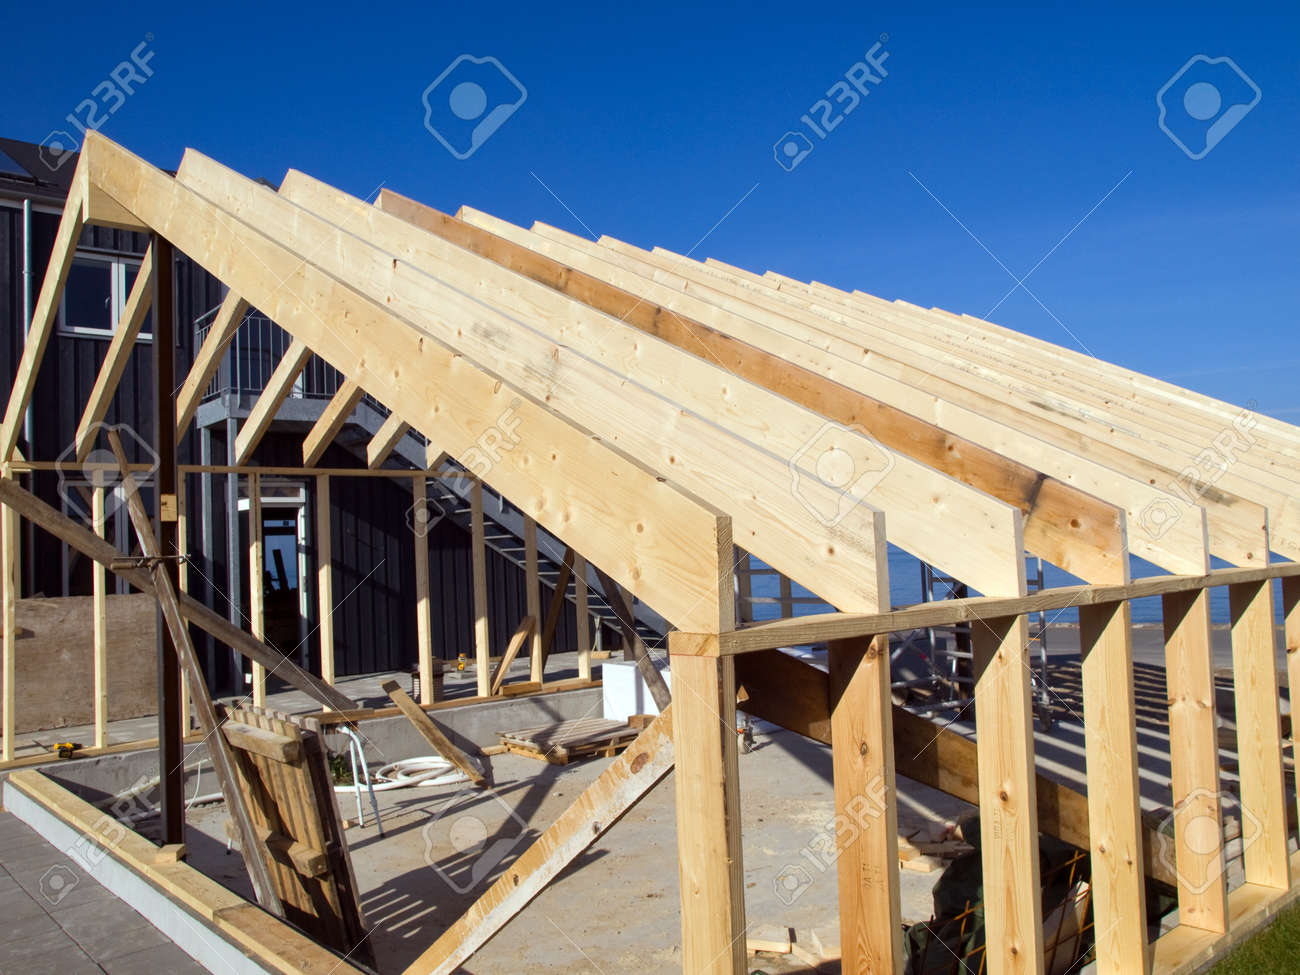 details of a wooden house building frame under construction stock